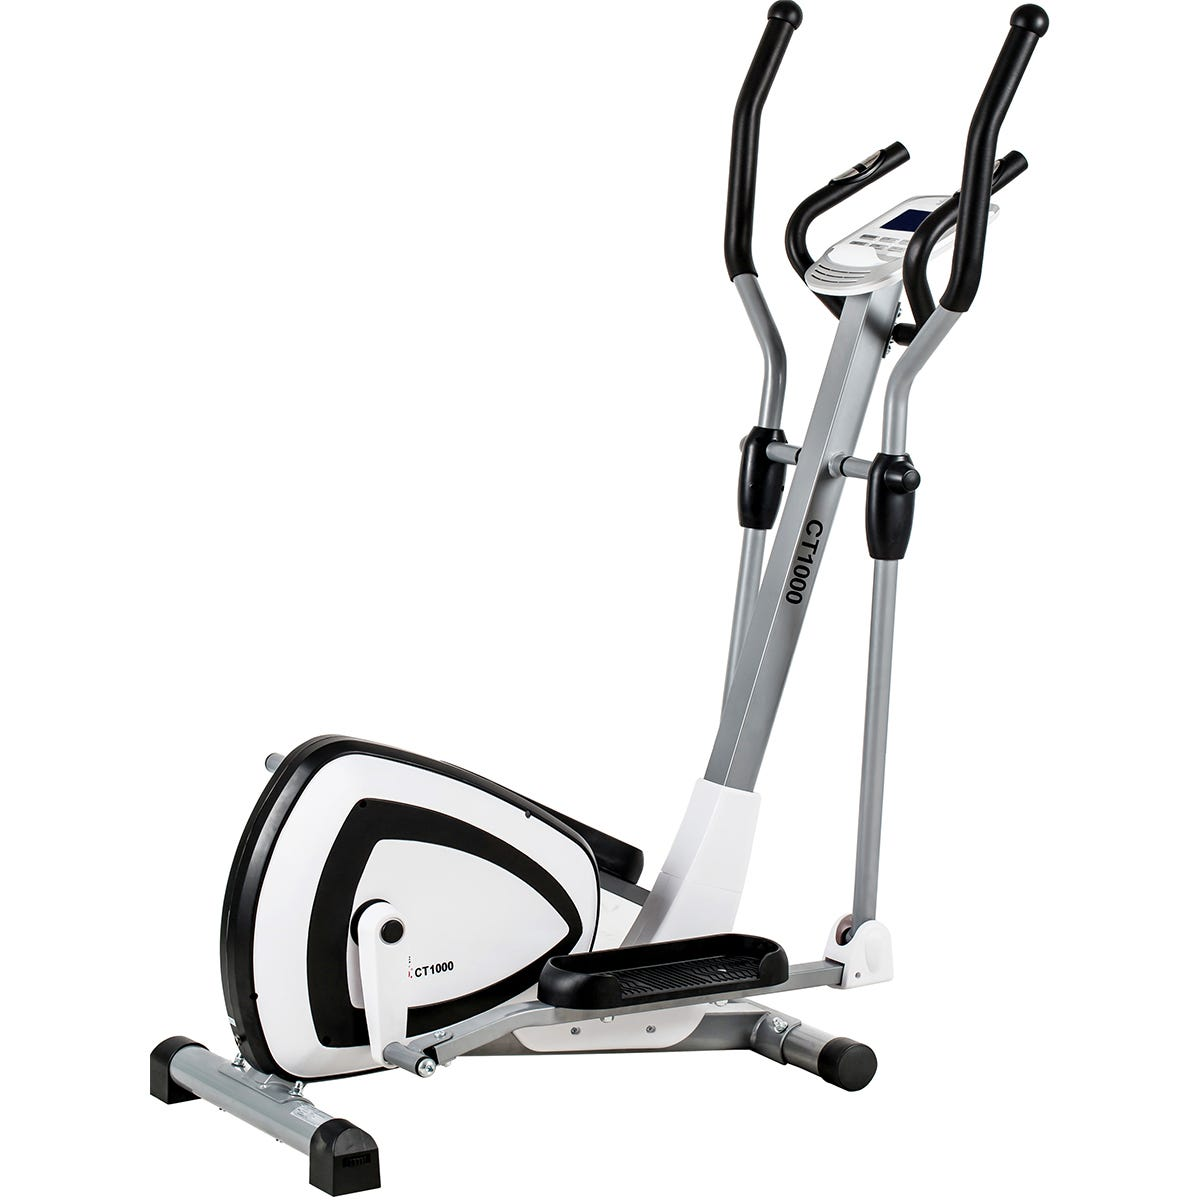 Motive Fitness MOTIVEfitness by UNO CT1000 Programmable Magnetic Elliptical Cross Trainer